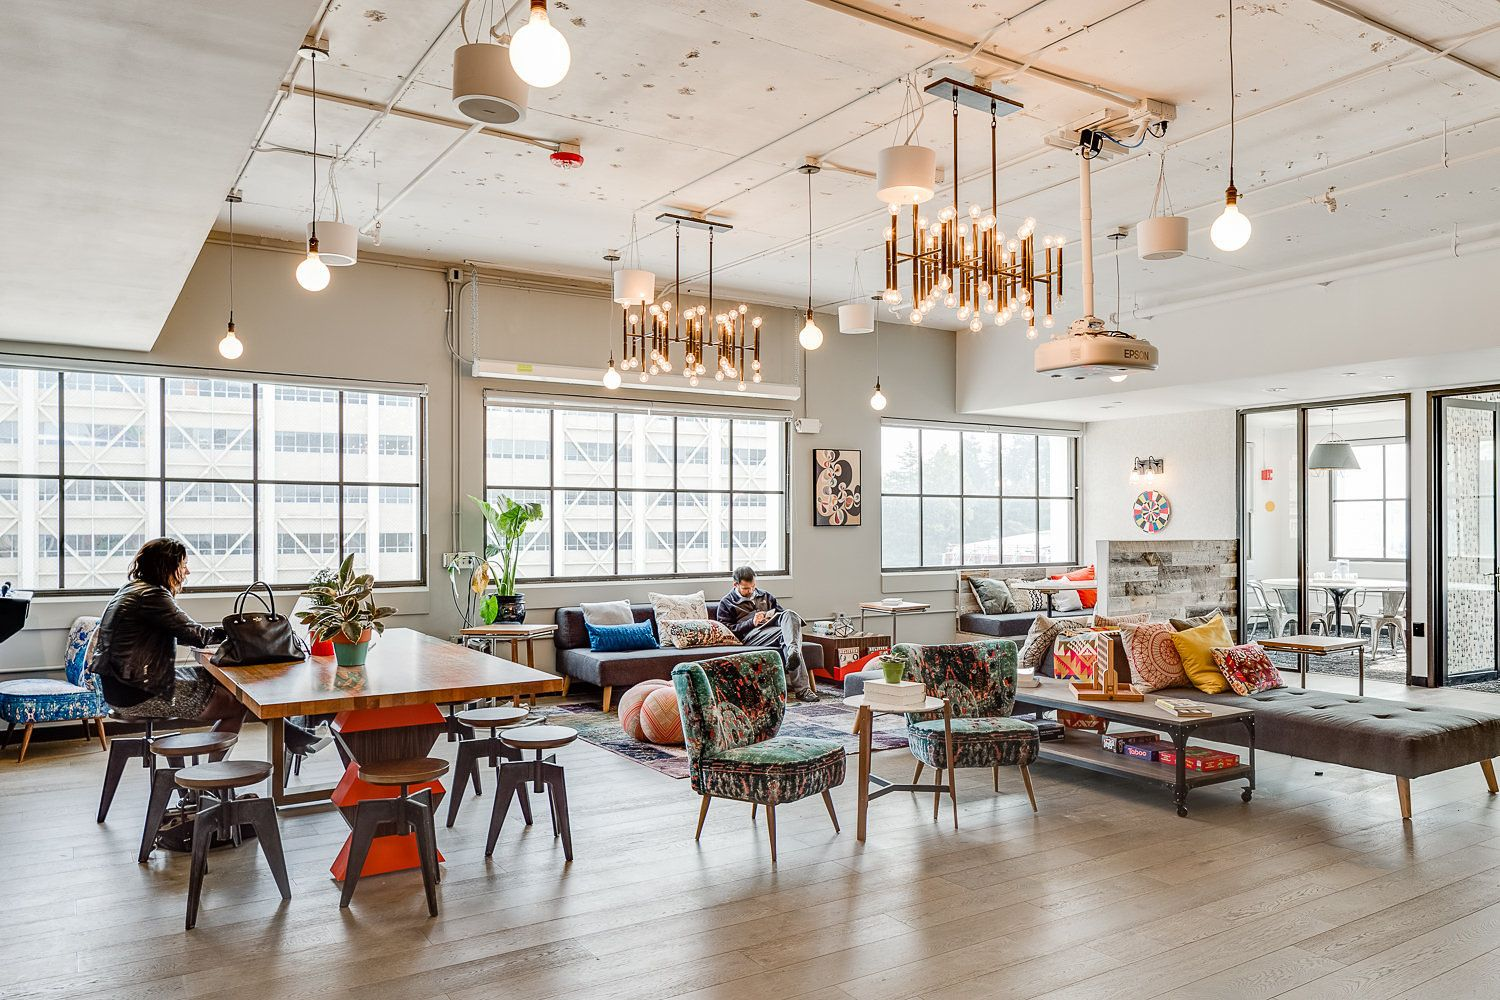 Are WeWork locations open in New York City during Coronavirus (COVID-19) pandemic?